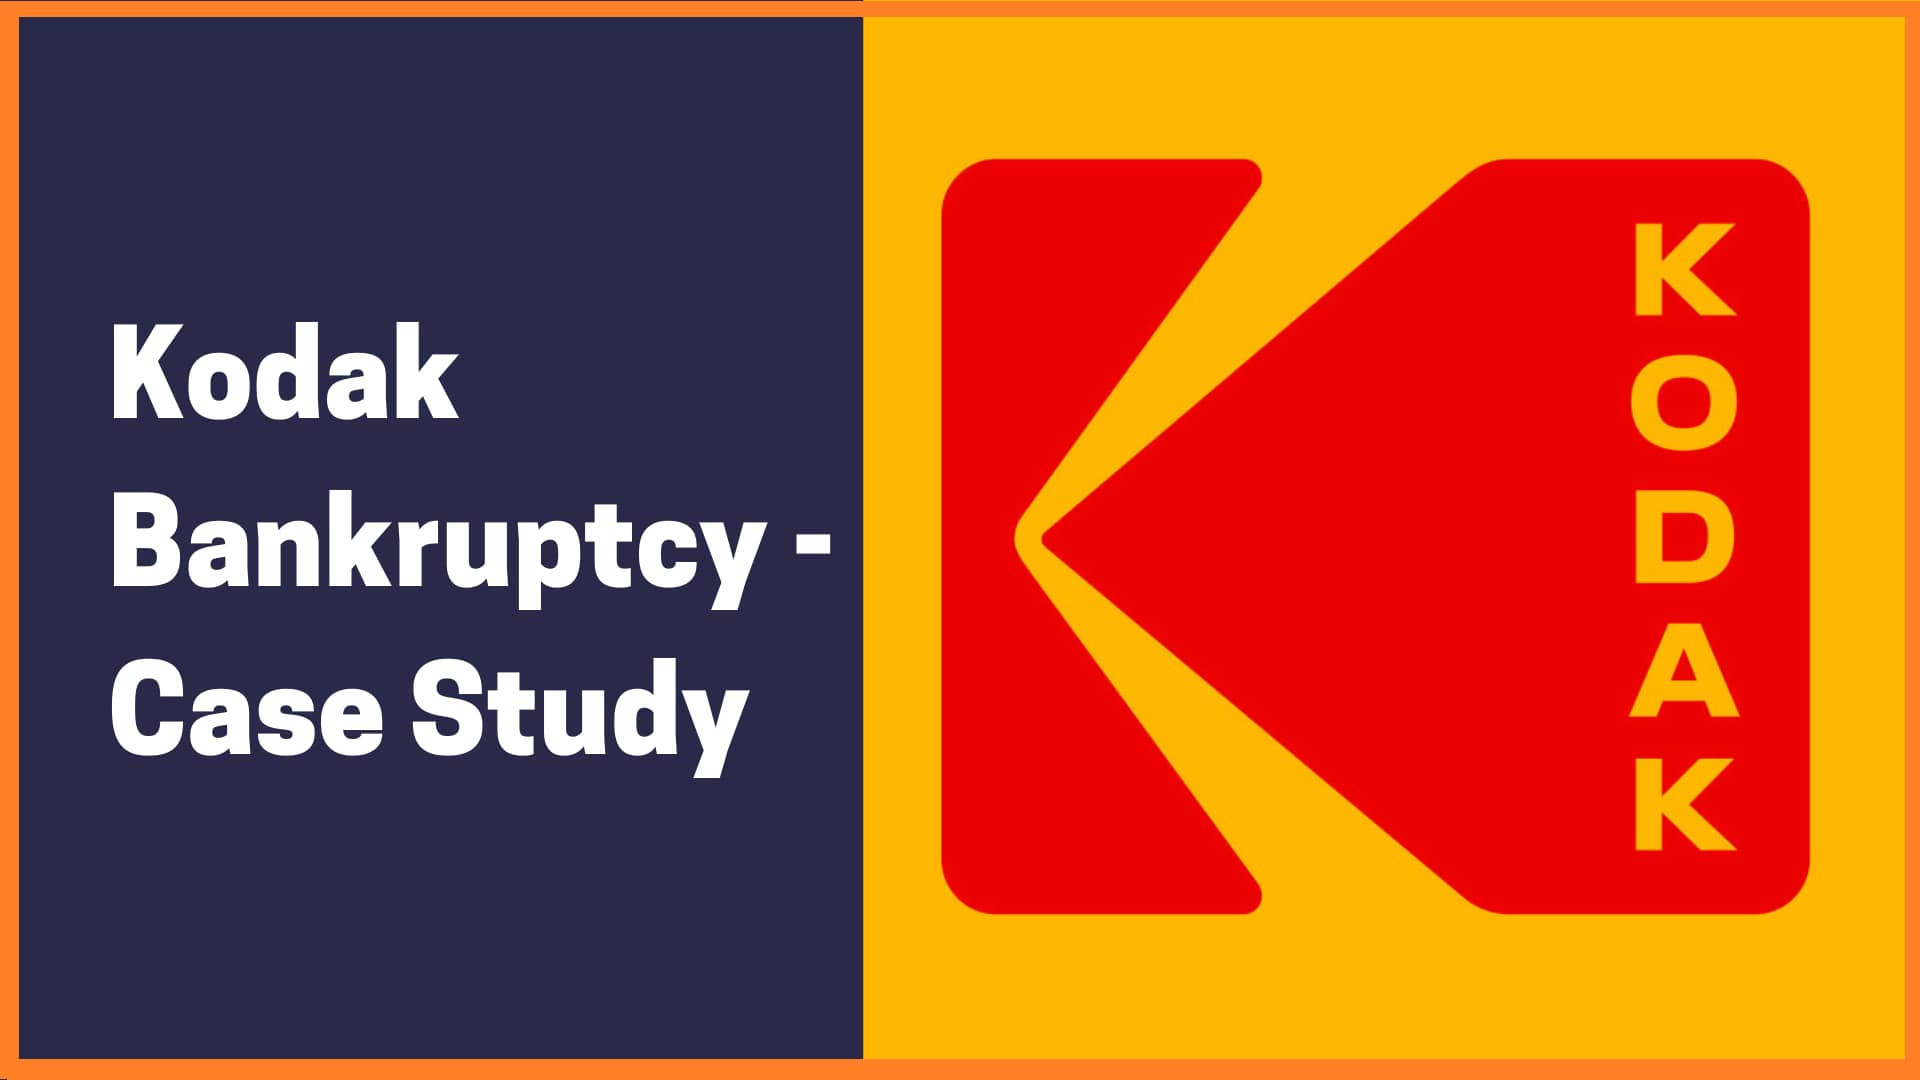 Why Did Kodak Fail? | Kodak Bankruptcy Case Study